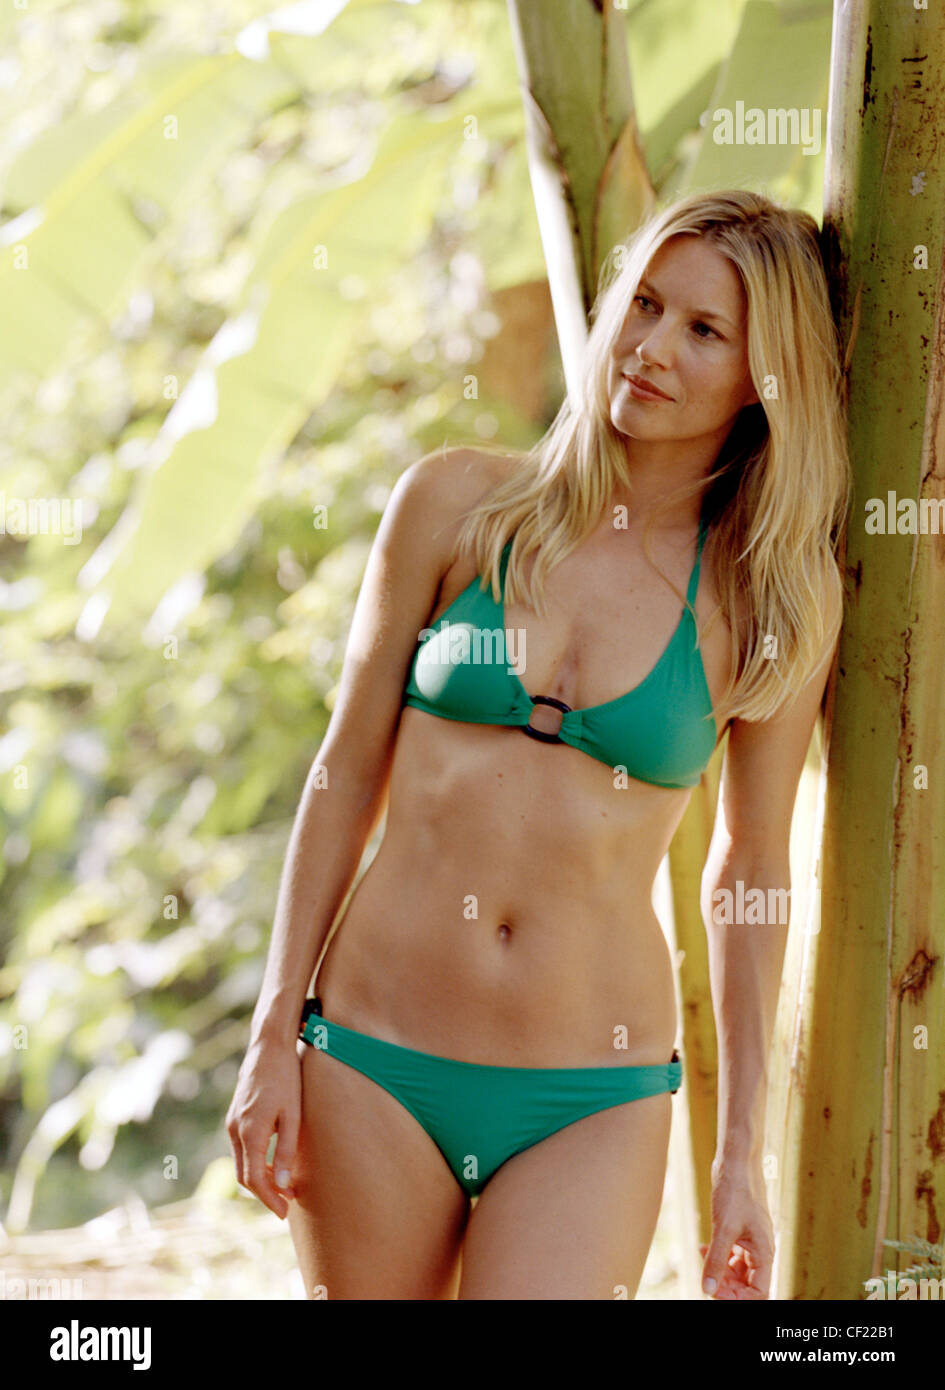 Green bikini and braces pics